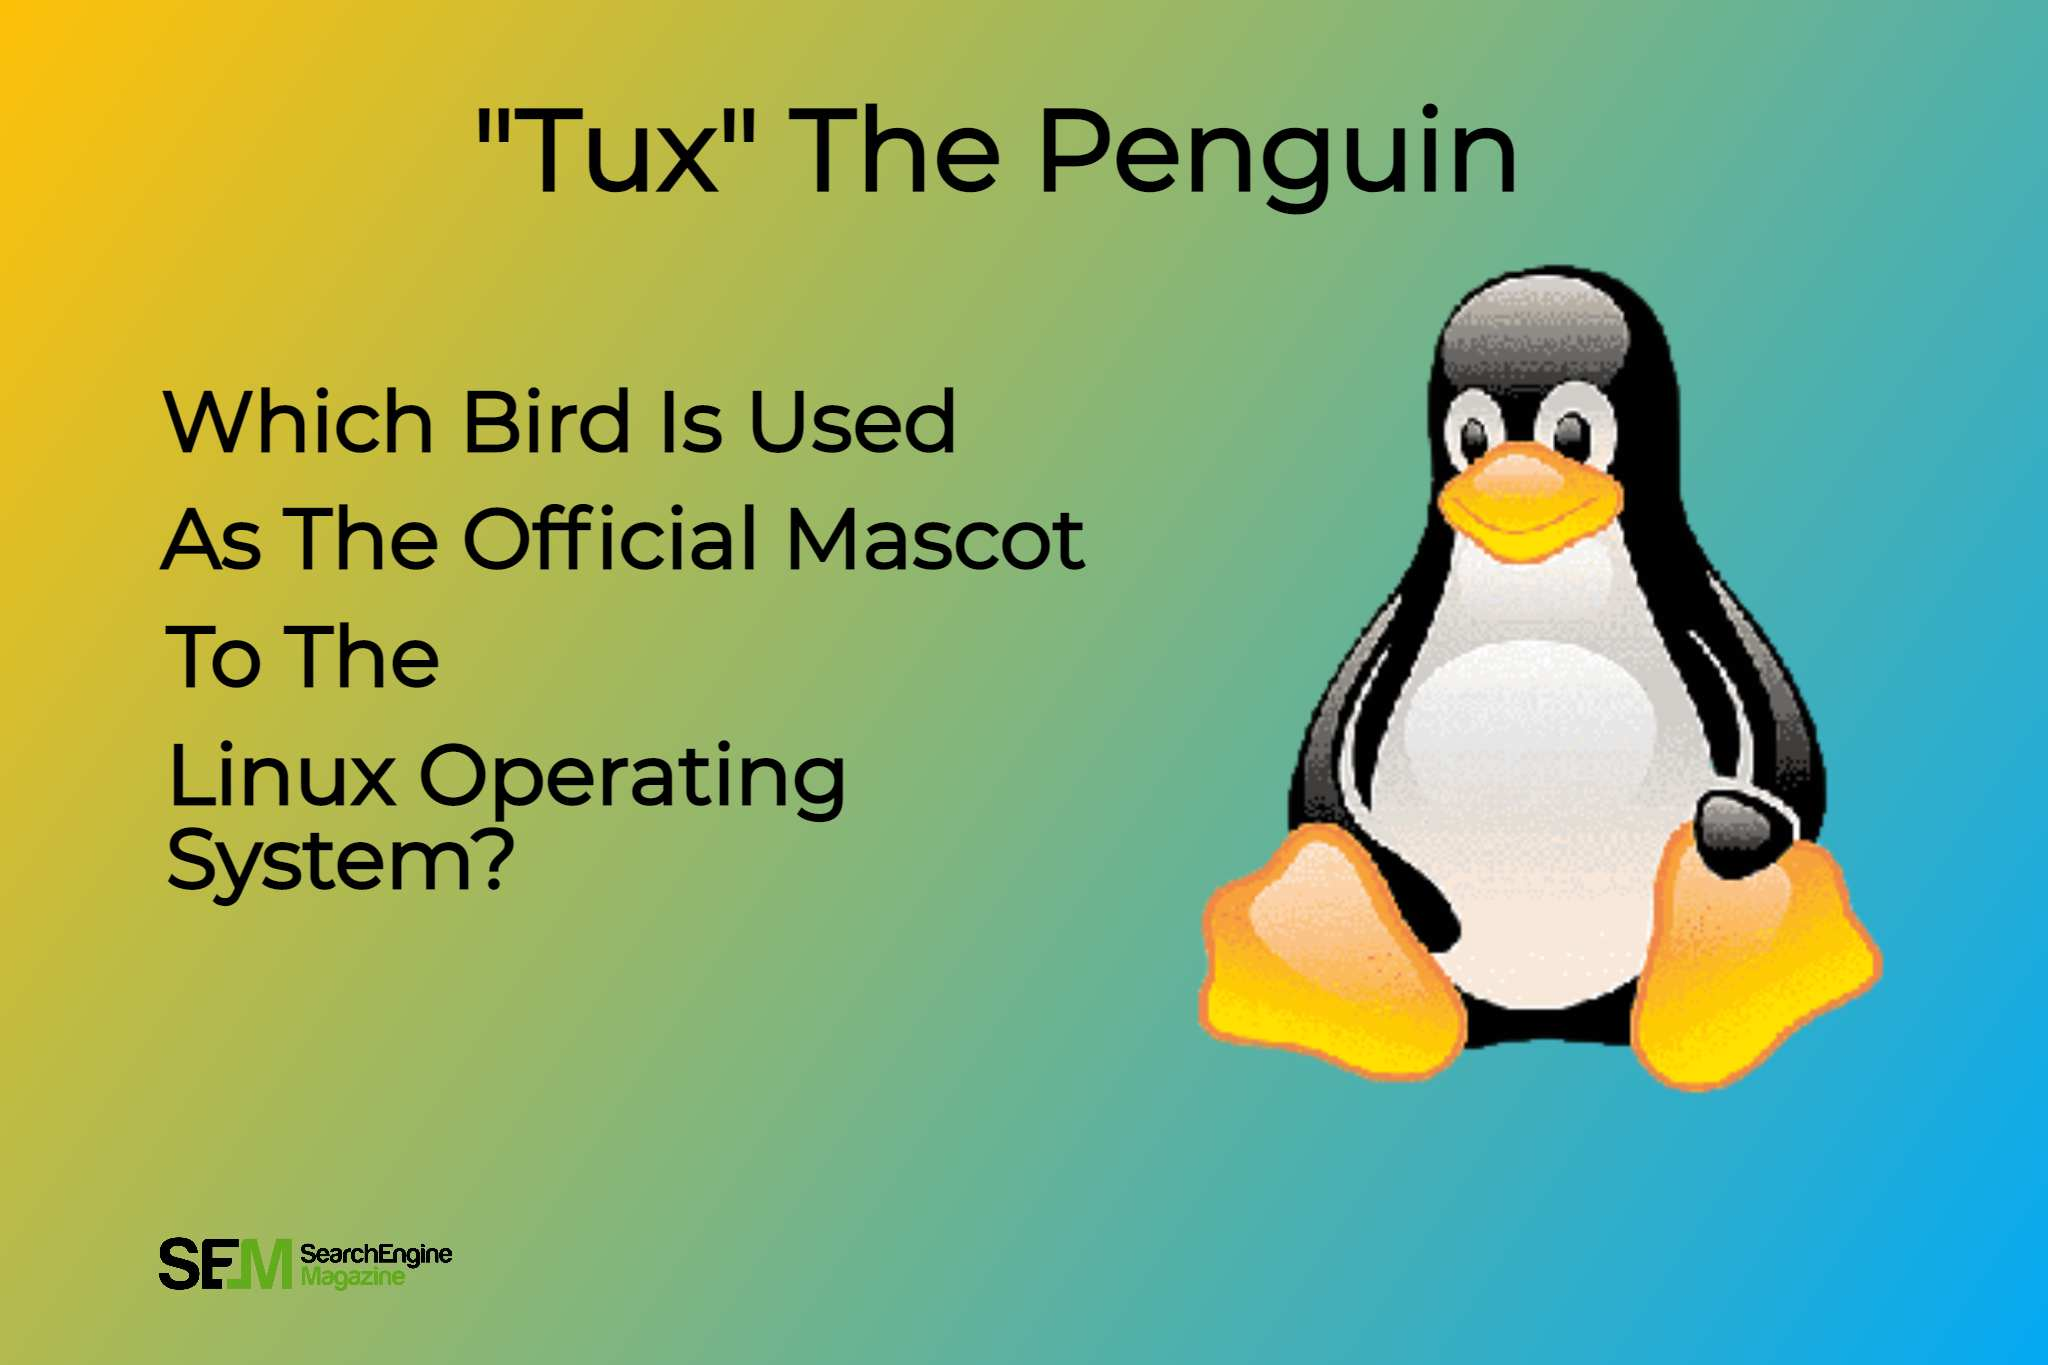 which bird is used as the official mascot to the Linux operating system_